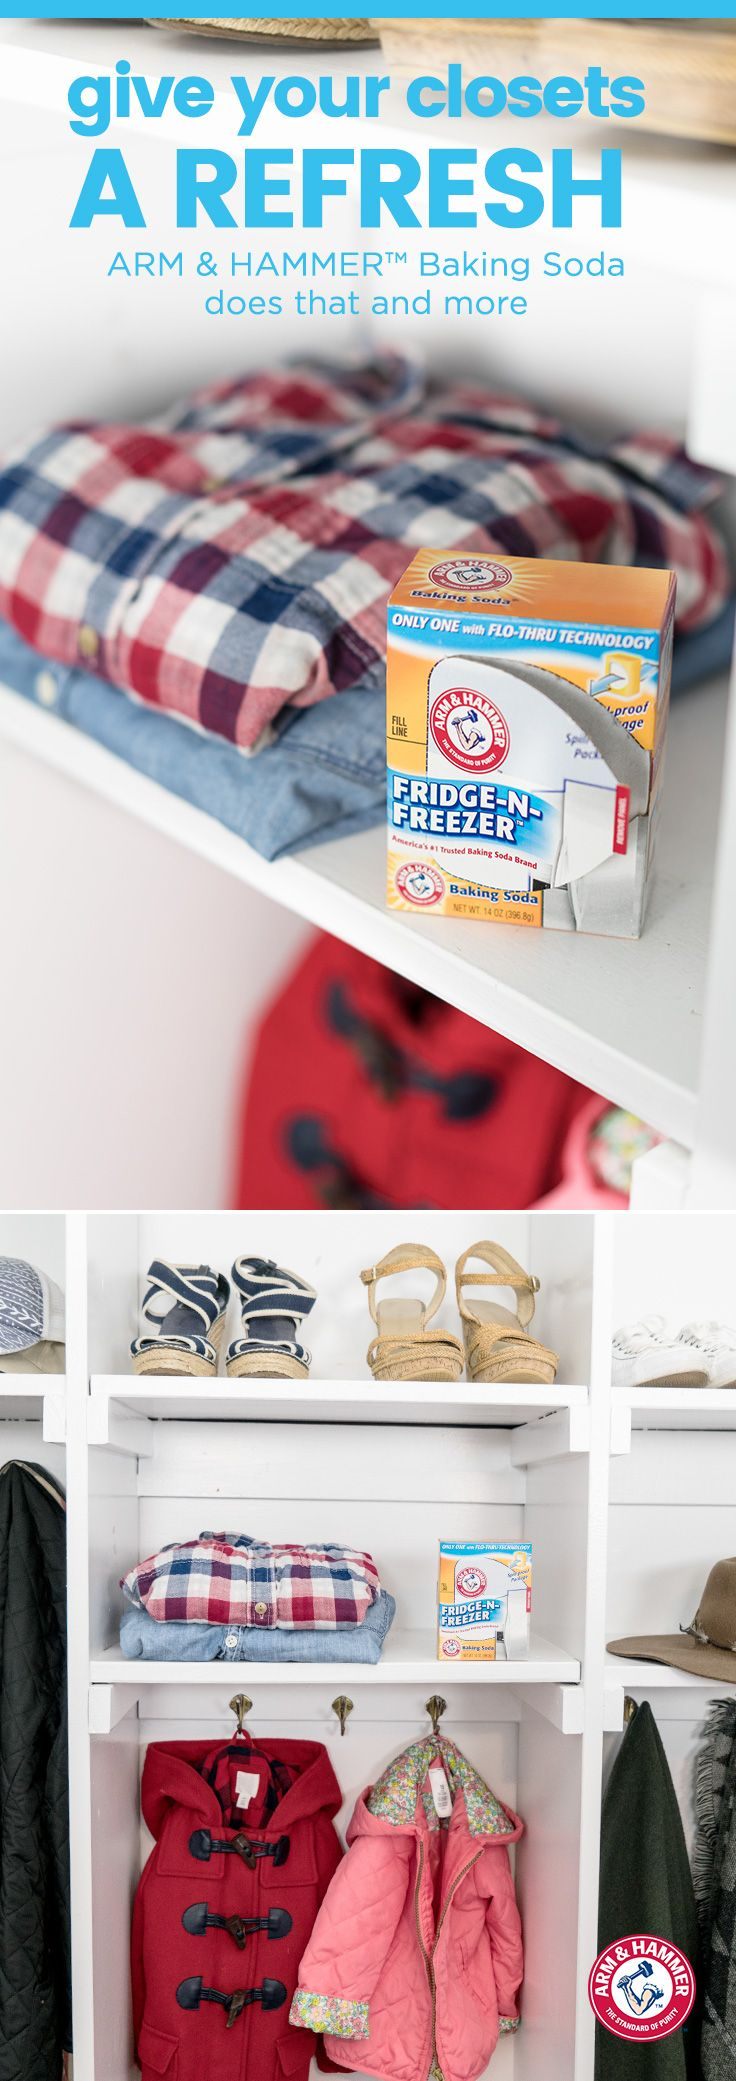 "What's ""in"" this season?  We say fresh closets!  Just place a box of ARM & HAMMER™  Fridge-n-Freezer™ Baking Soda in your closet shelf.  Replace the box every 30 days to keep stale odors out all season long.  After all, freshness is always in style."